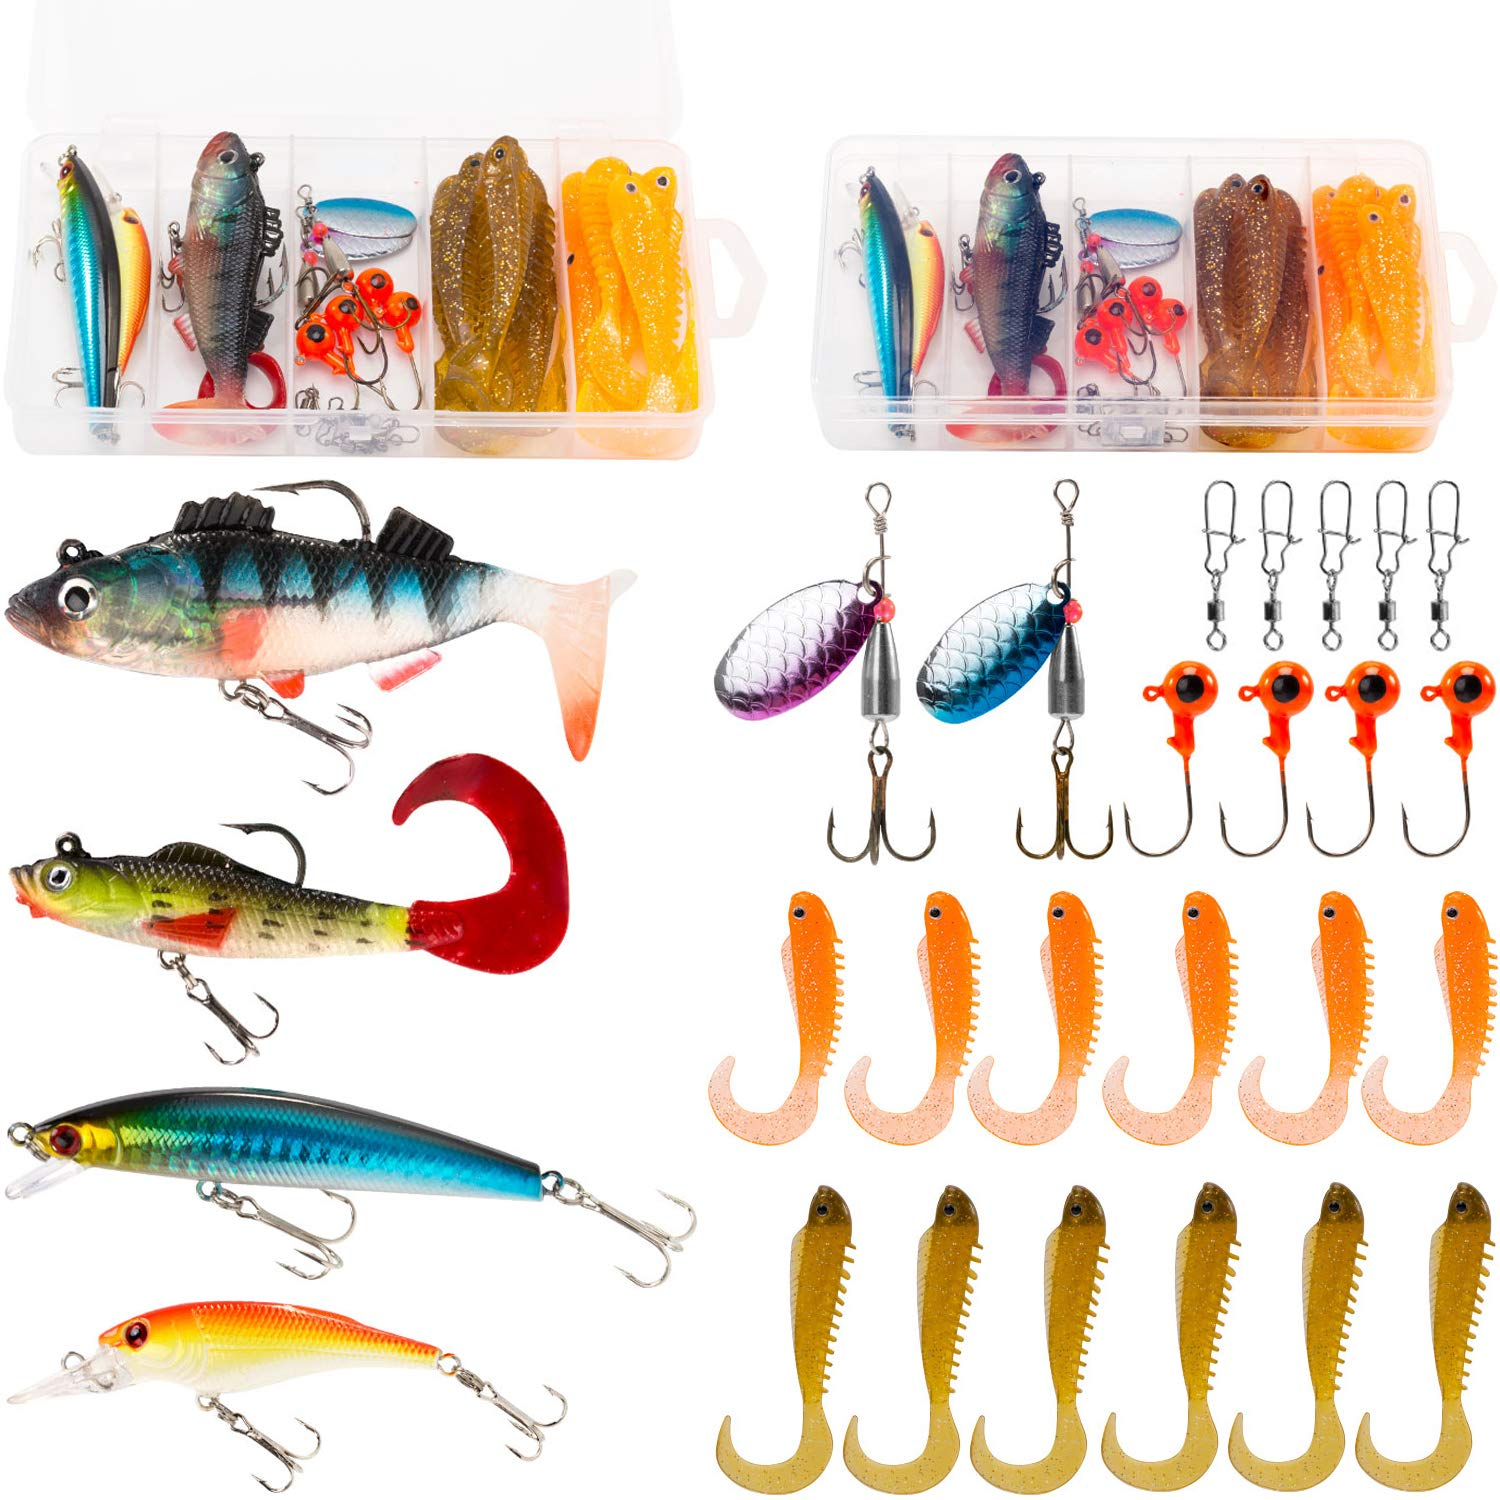 PLUSINNO Fishing Lures Tackle kit Set for Freshwater Saltwater, Including Soft Baits Lead Head, Crankbaits, Spinner Lures, Jig Heads, Plastic Worms with Tackle Box, 27pcs Fishing Gear Lure... by PLUSINNO